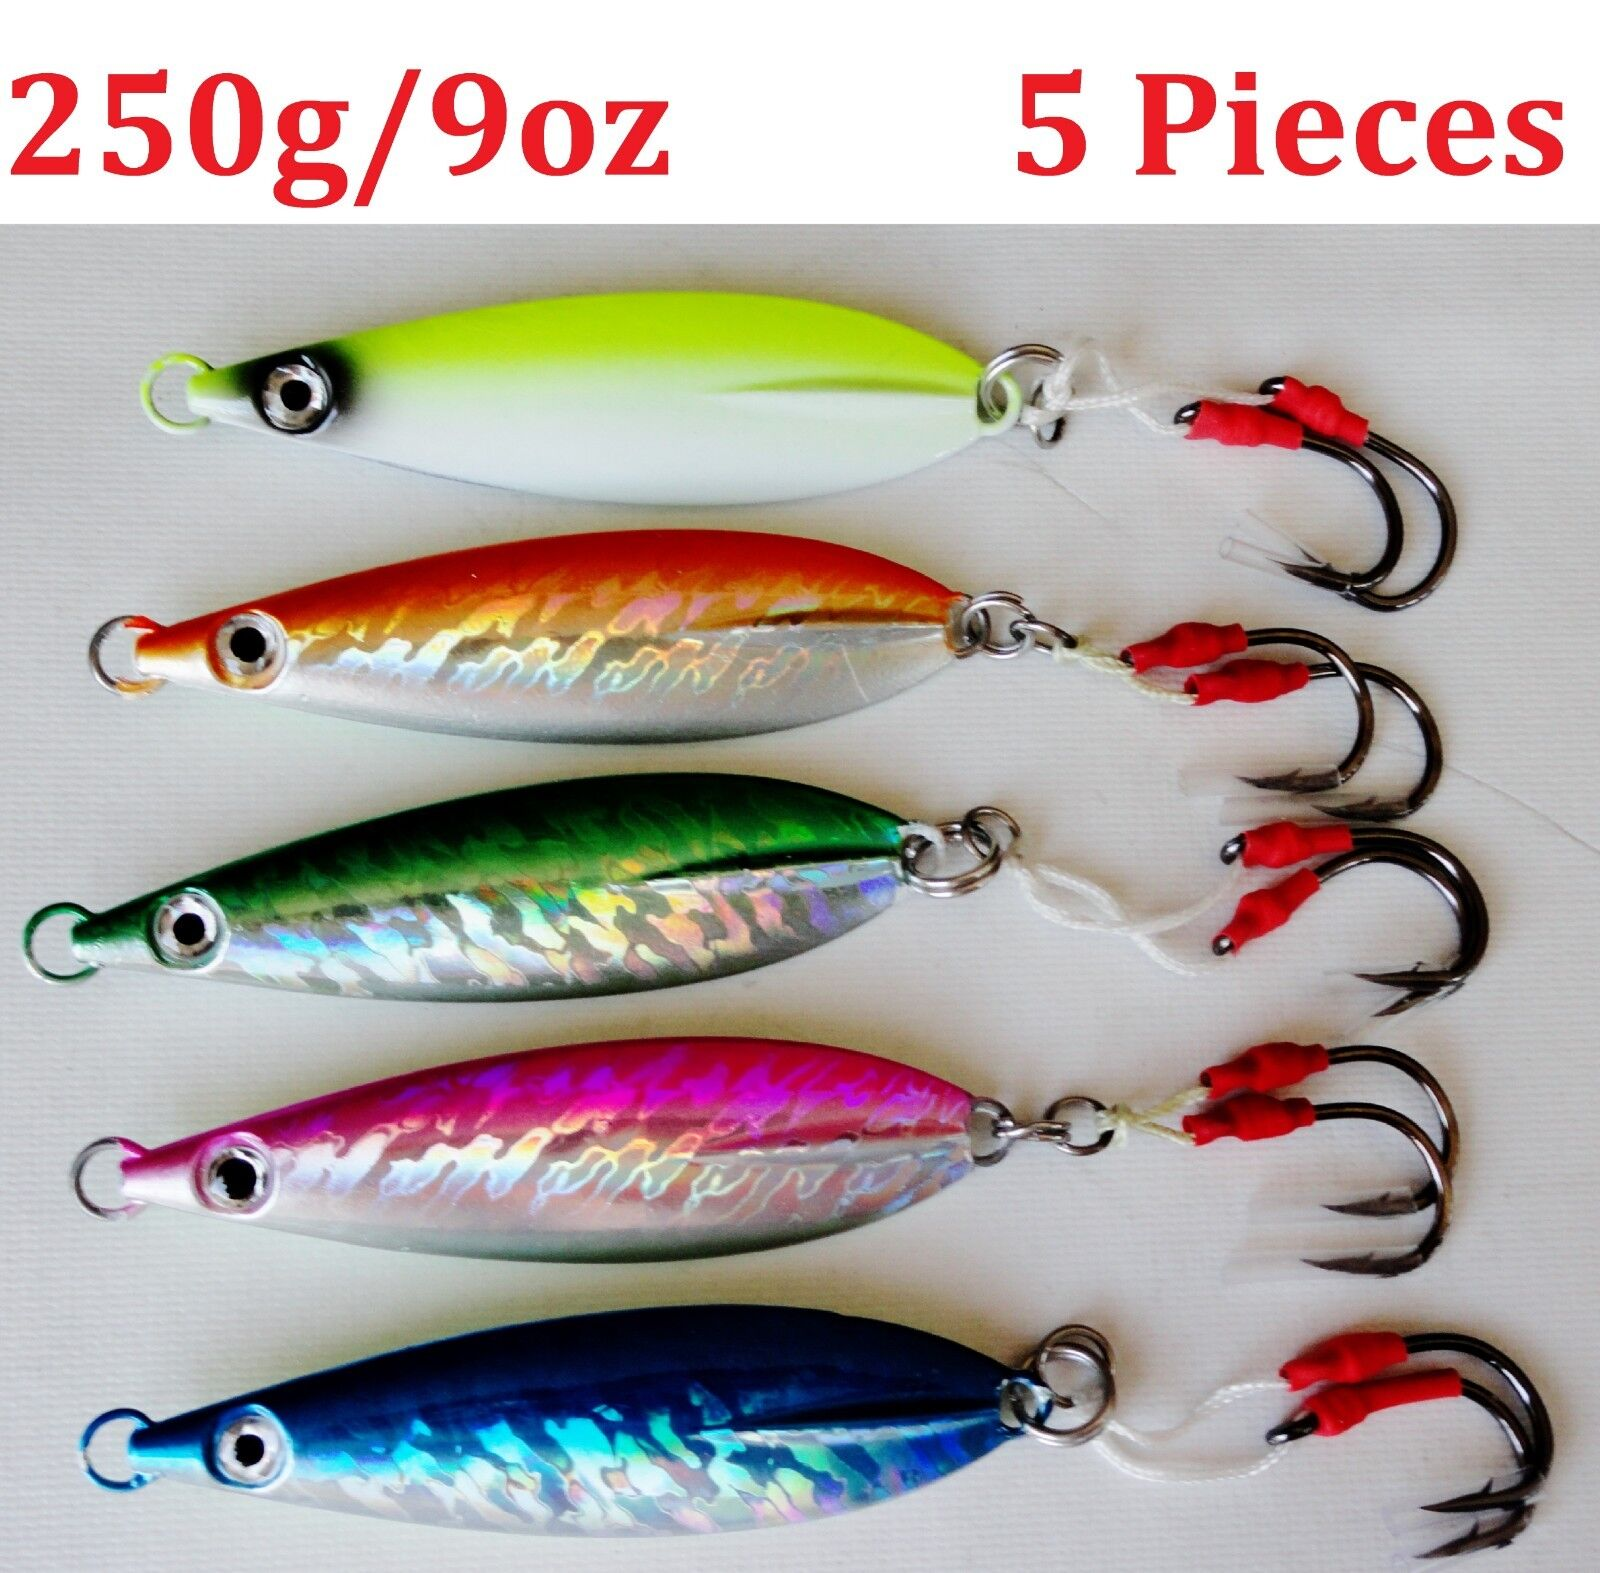 5  pc Fast Fall greenical Keel Flat Knife Jigs 250g (9oz) Saltwater Fishing Lures  comfortable